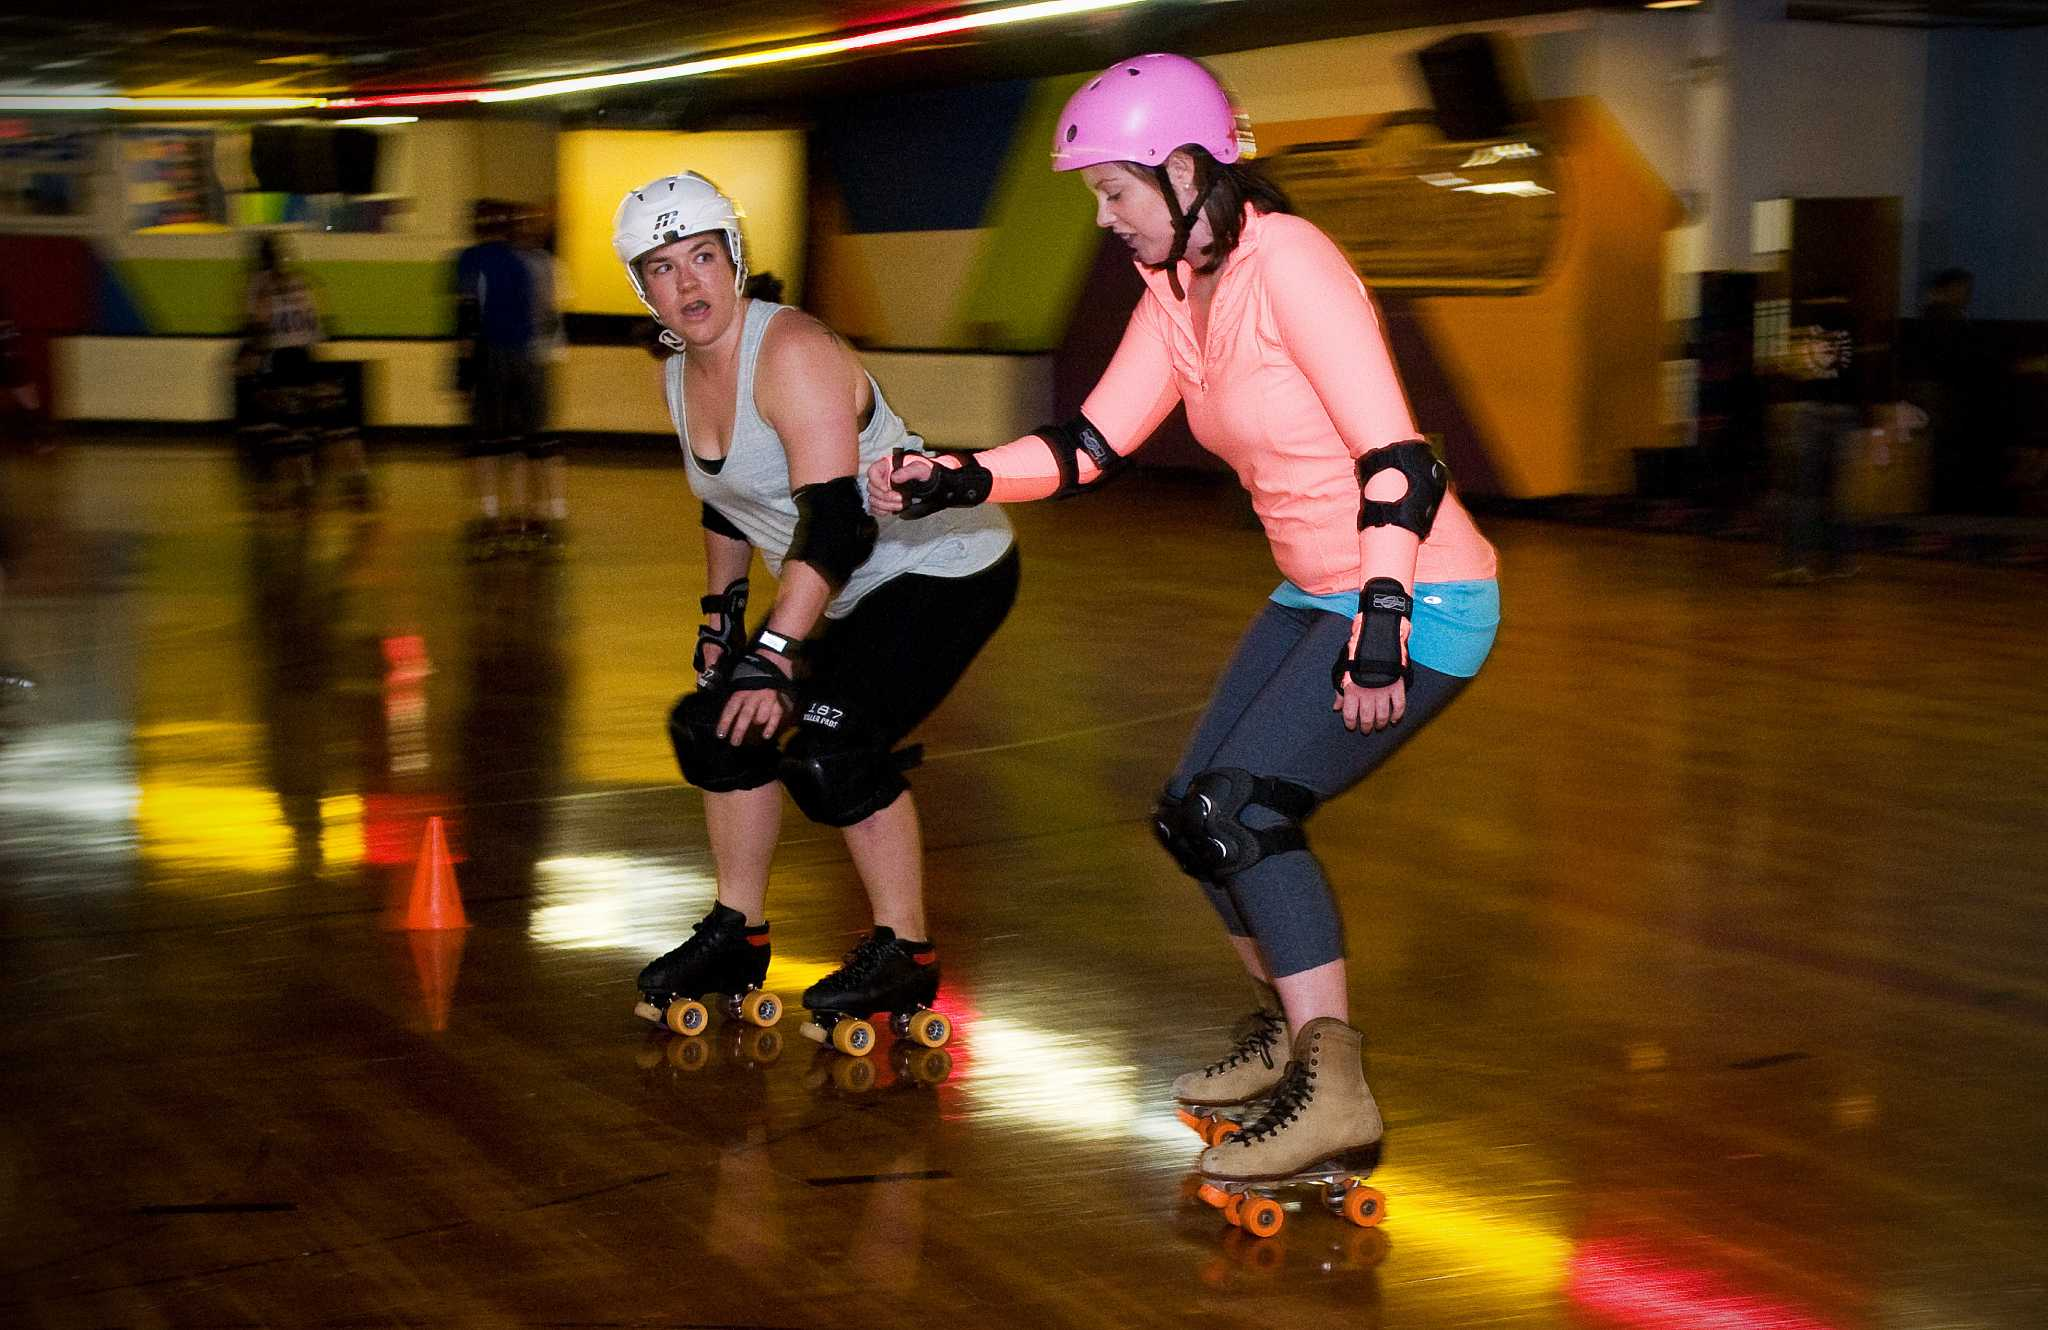 Getting down and derby - NewsTimes